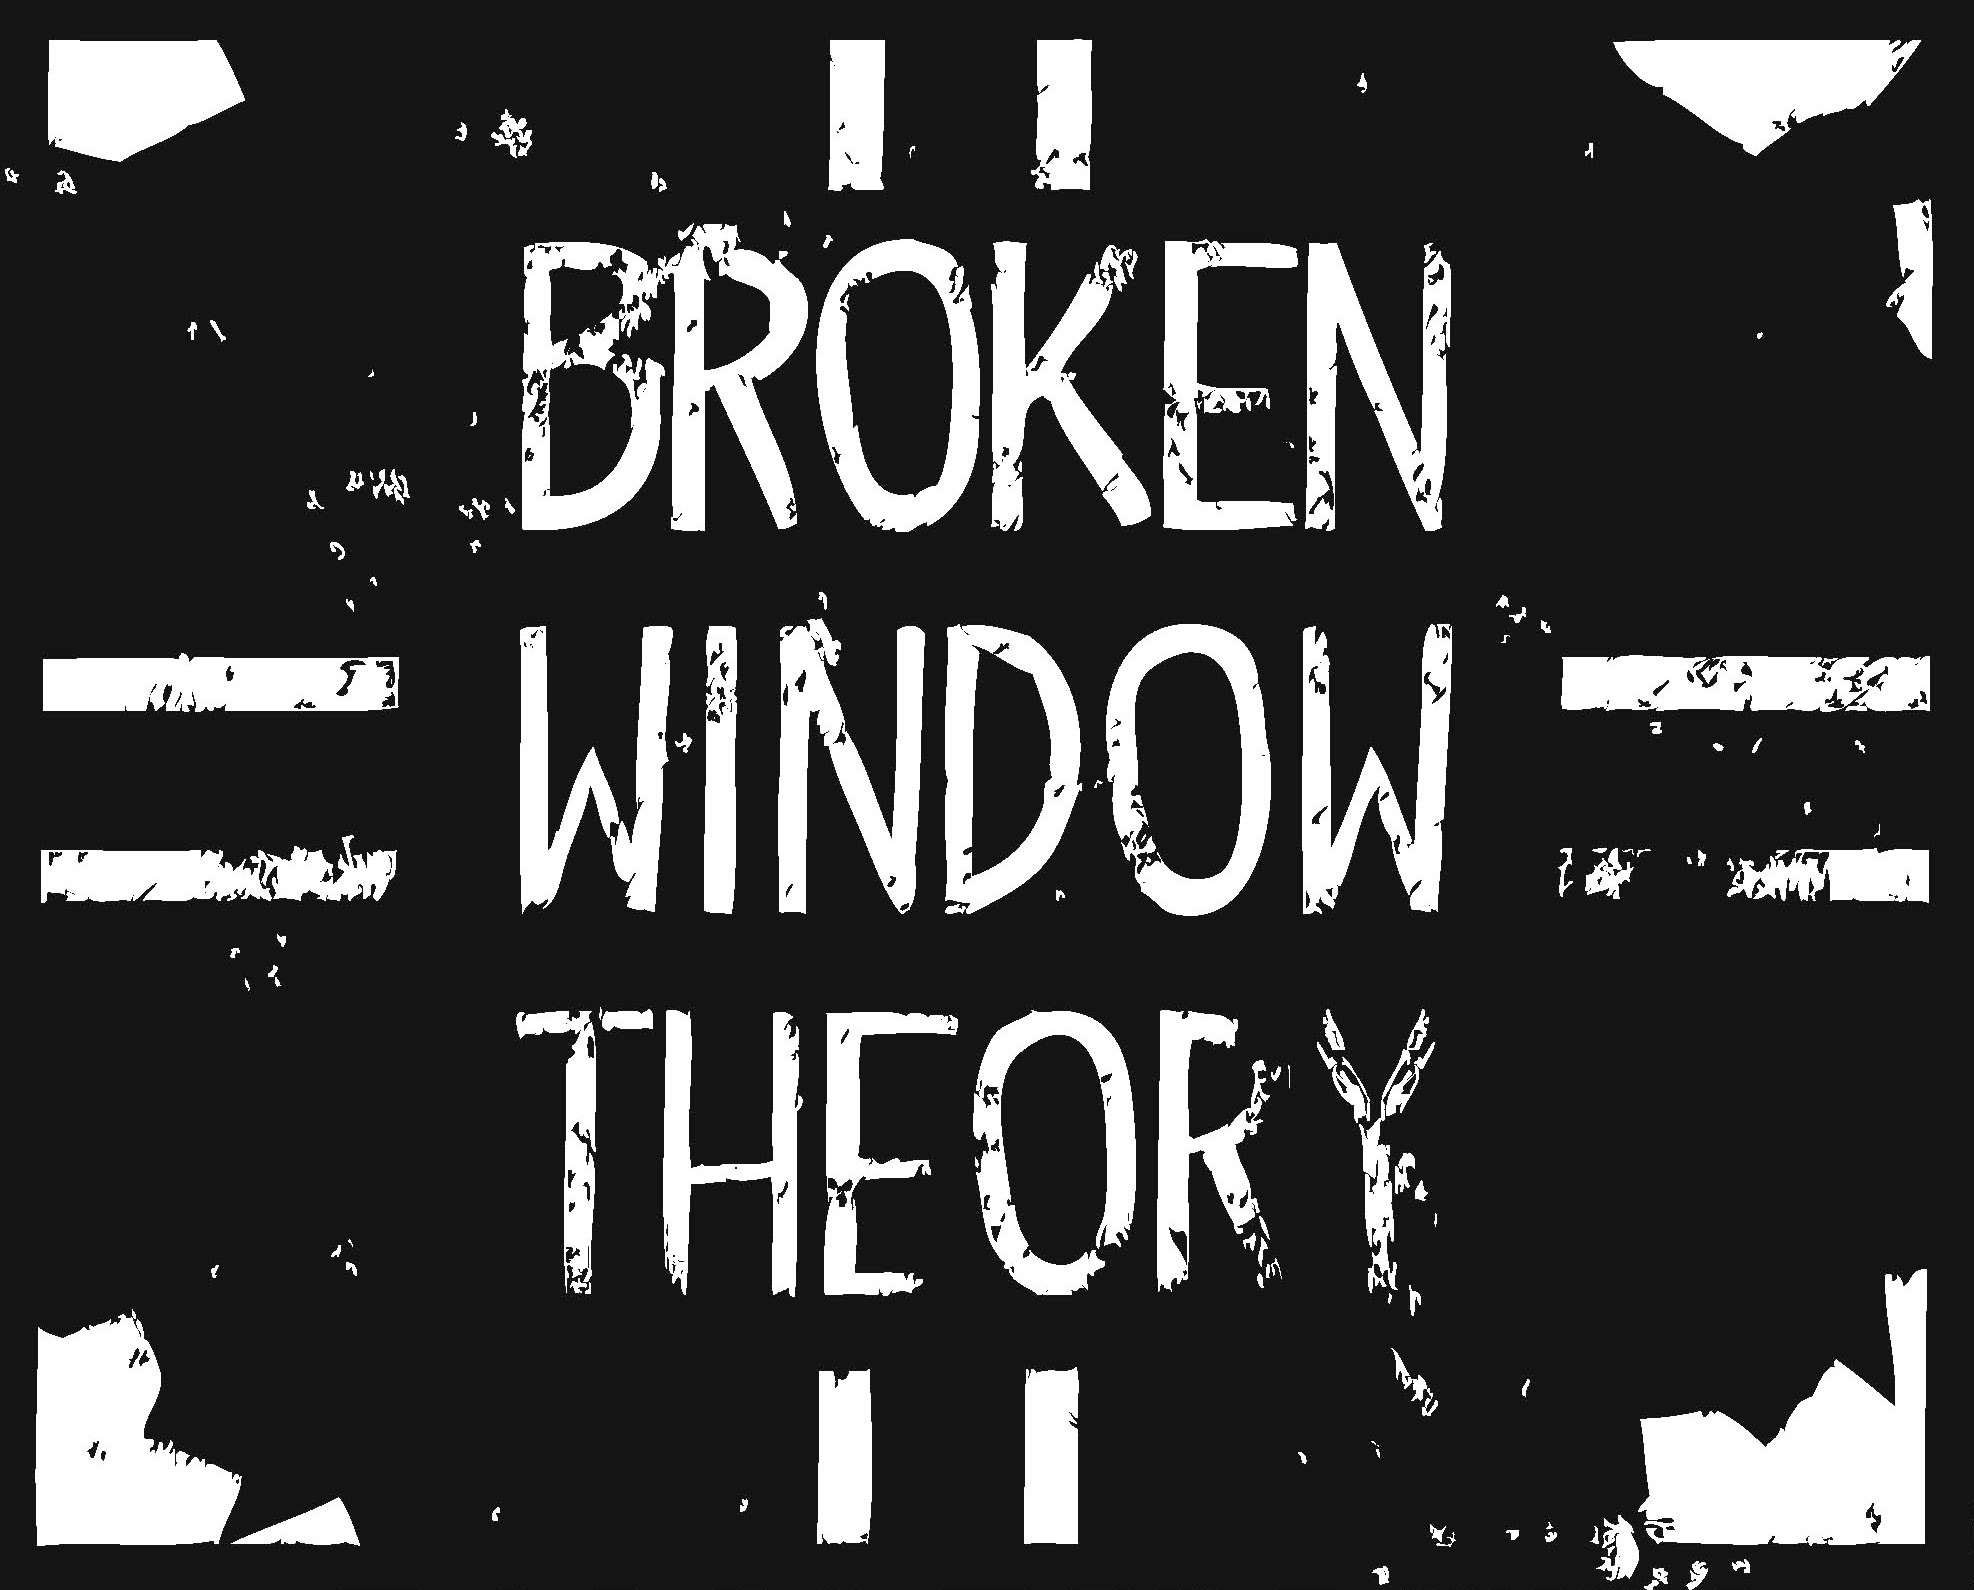 broken windows theory Neoconservatives george kelling and james q wilson outlined the theory  underlying broken windows policing in a 1982 atlantic quarterly.